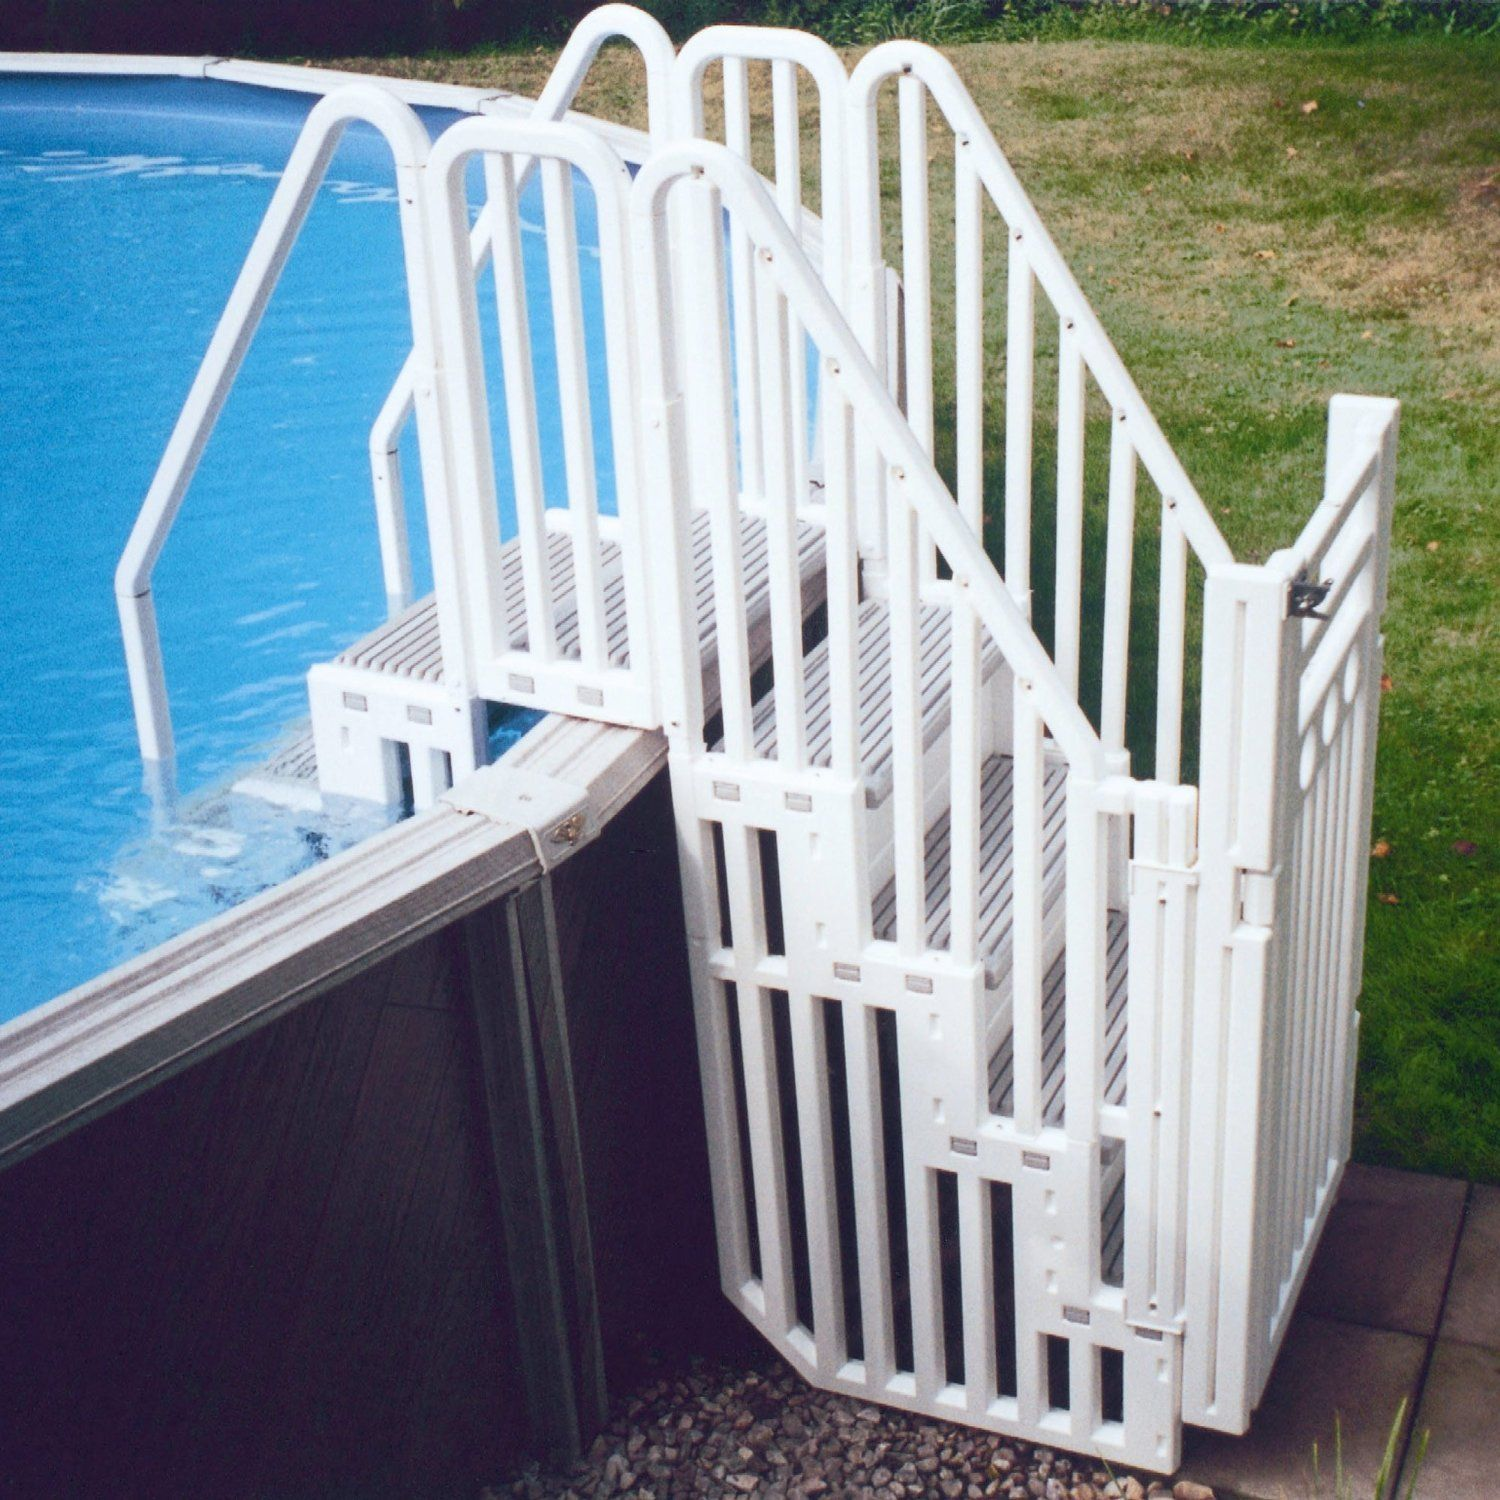 Best Above Ground Pool Ladders Reviews The Pool Cleaner Expert Above Ground Pool Ladders